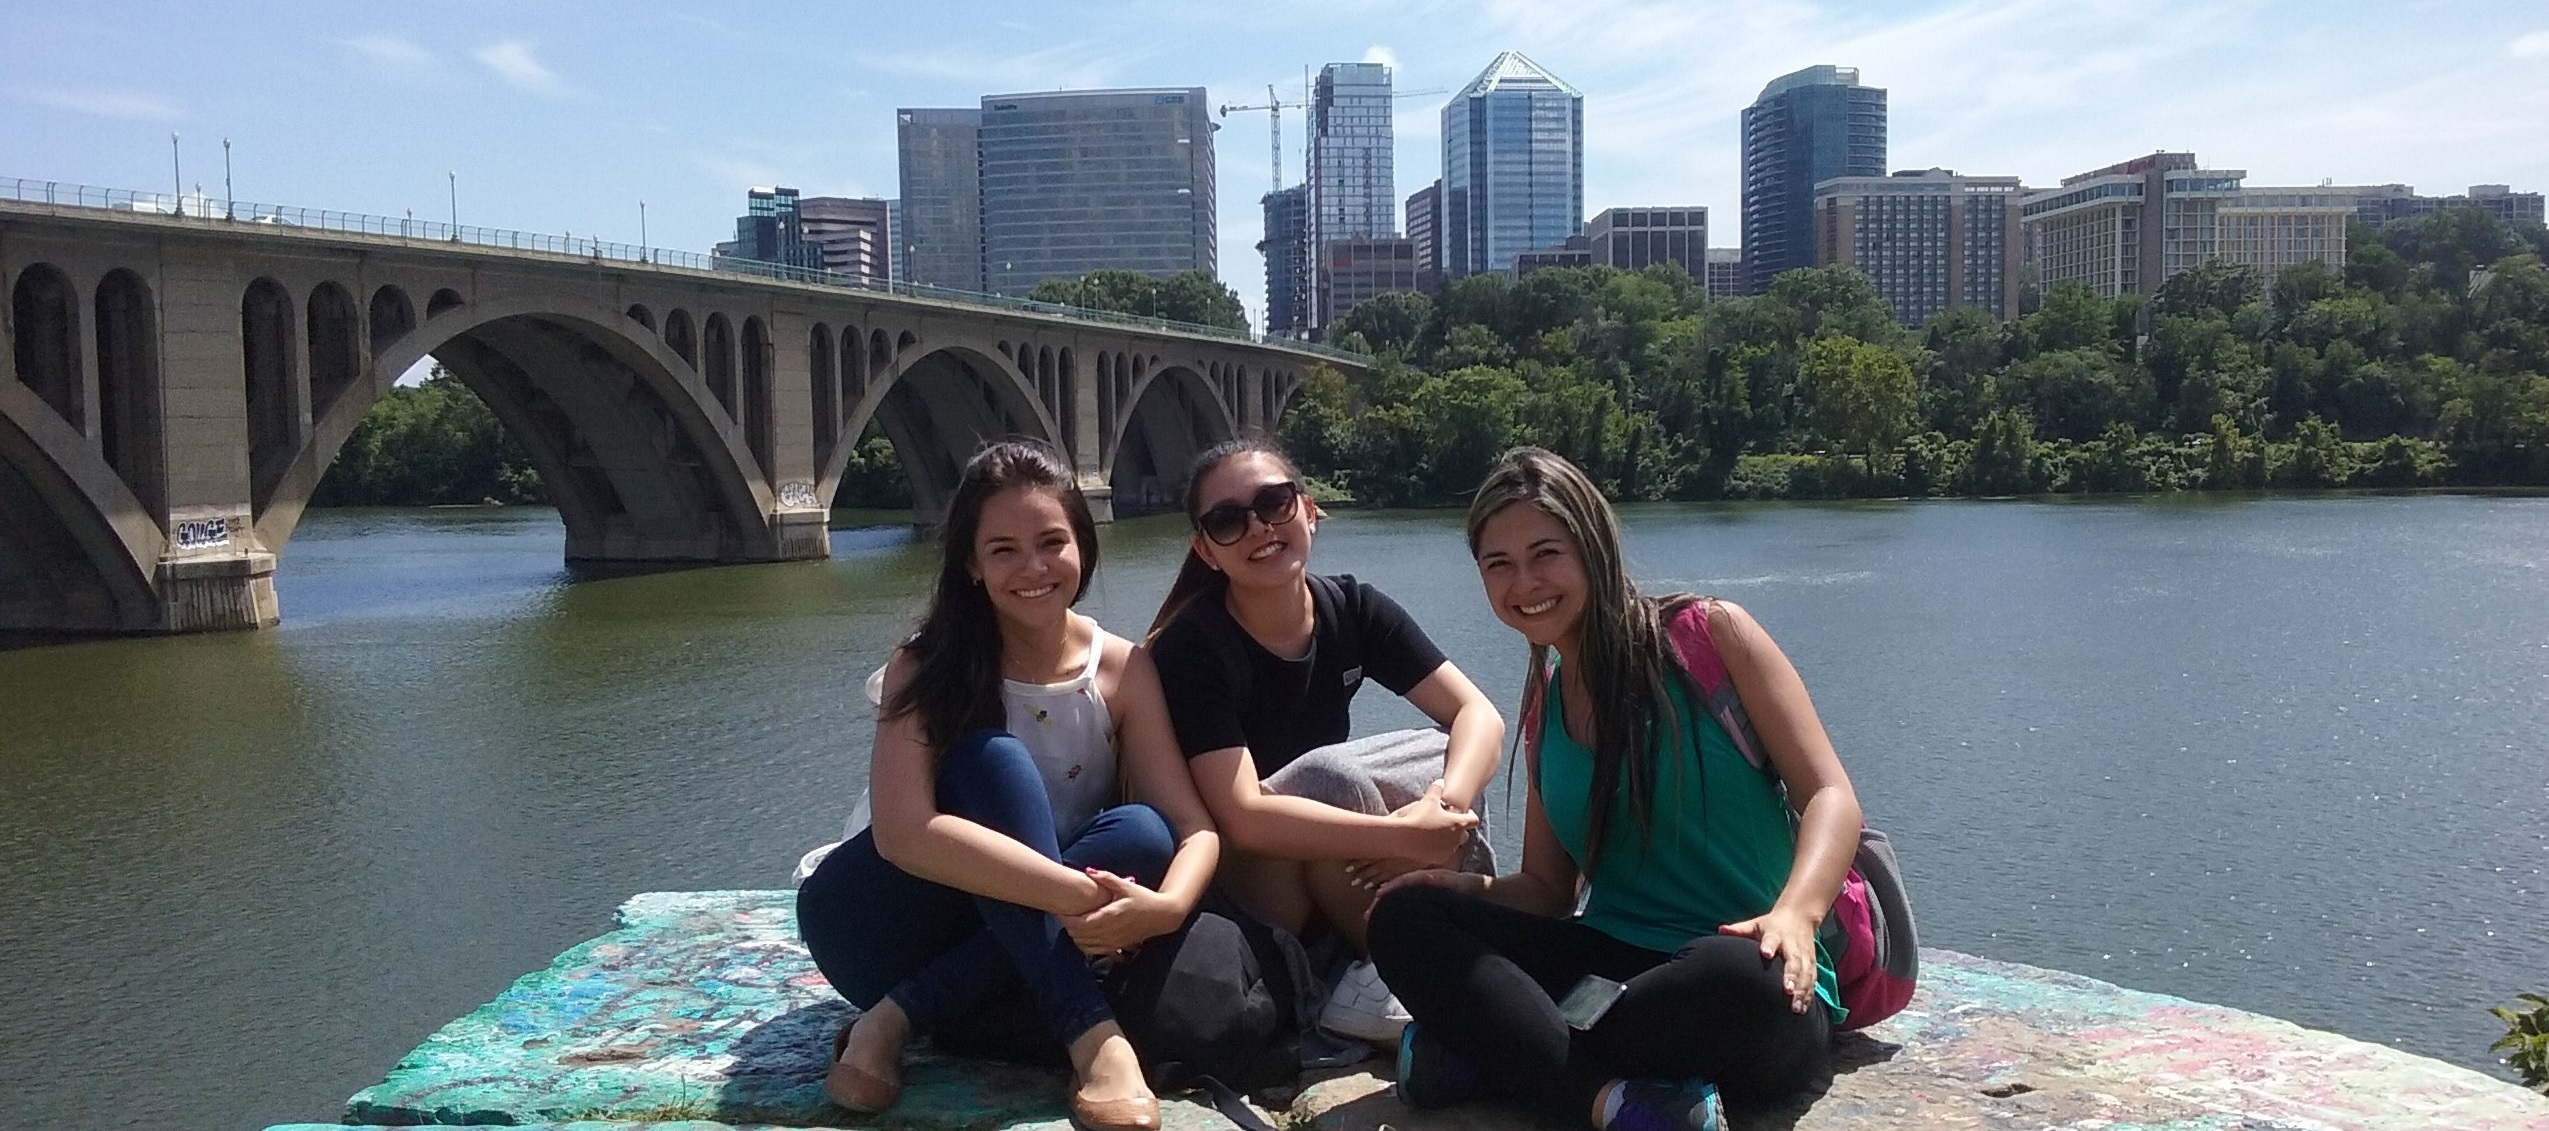 inlingua English students next to the Potomac overlooking Rosslyn